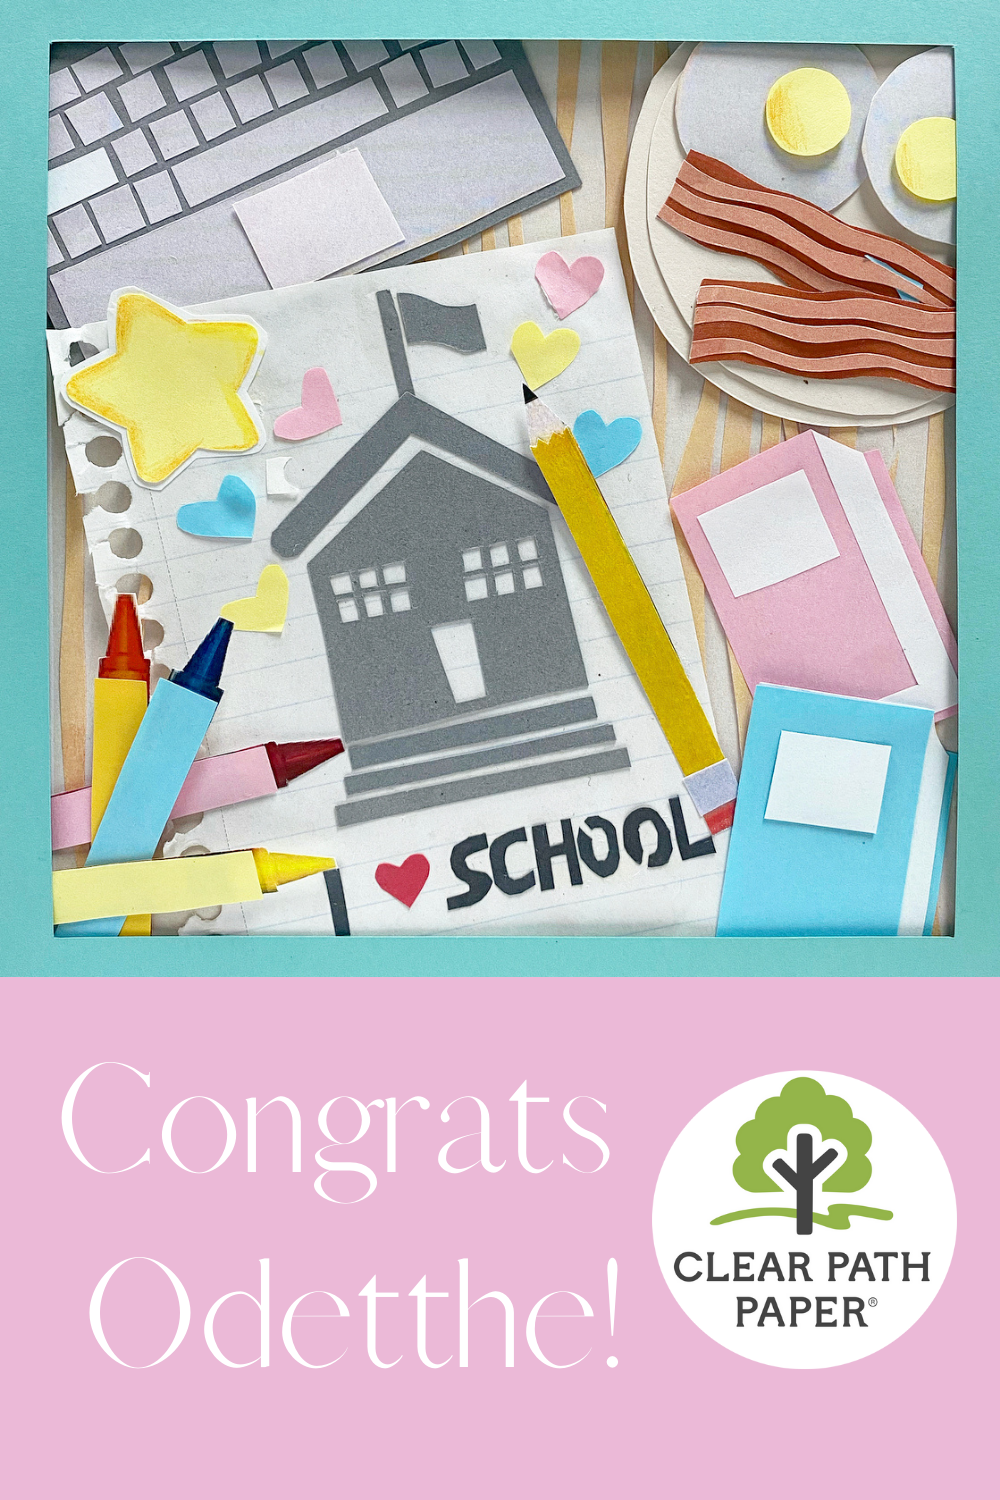 Congrats to the Second Place Winner of our Back-to-School Crafting Contest, Odetthe! Odetthe's collage is entitled